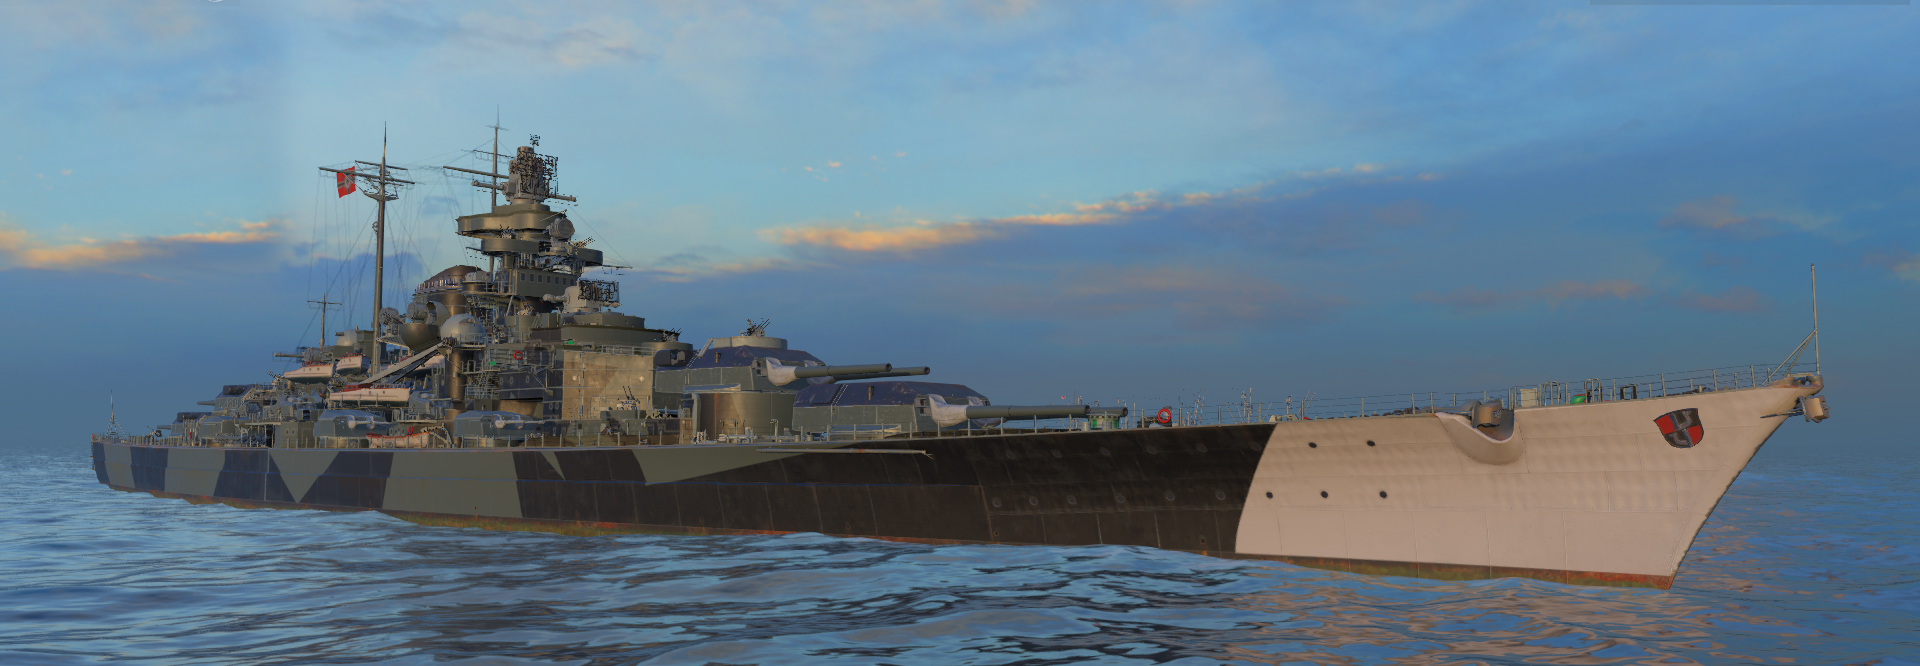 wow rendition of KMS Tirpitz